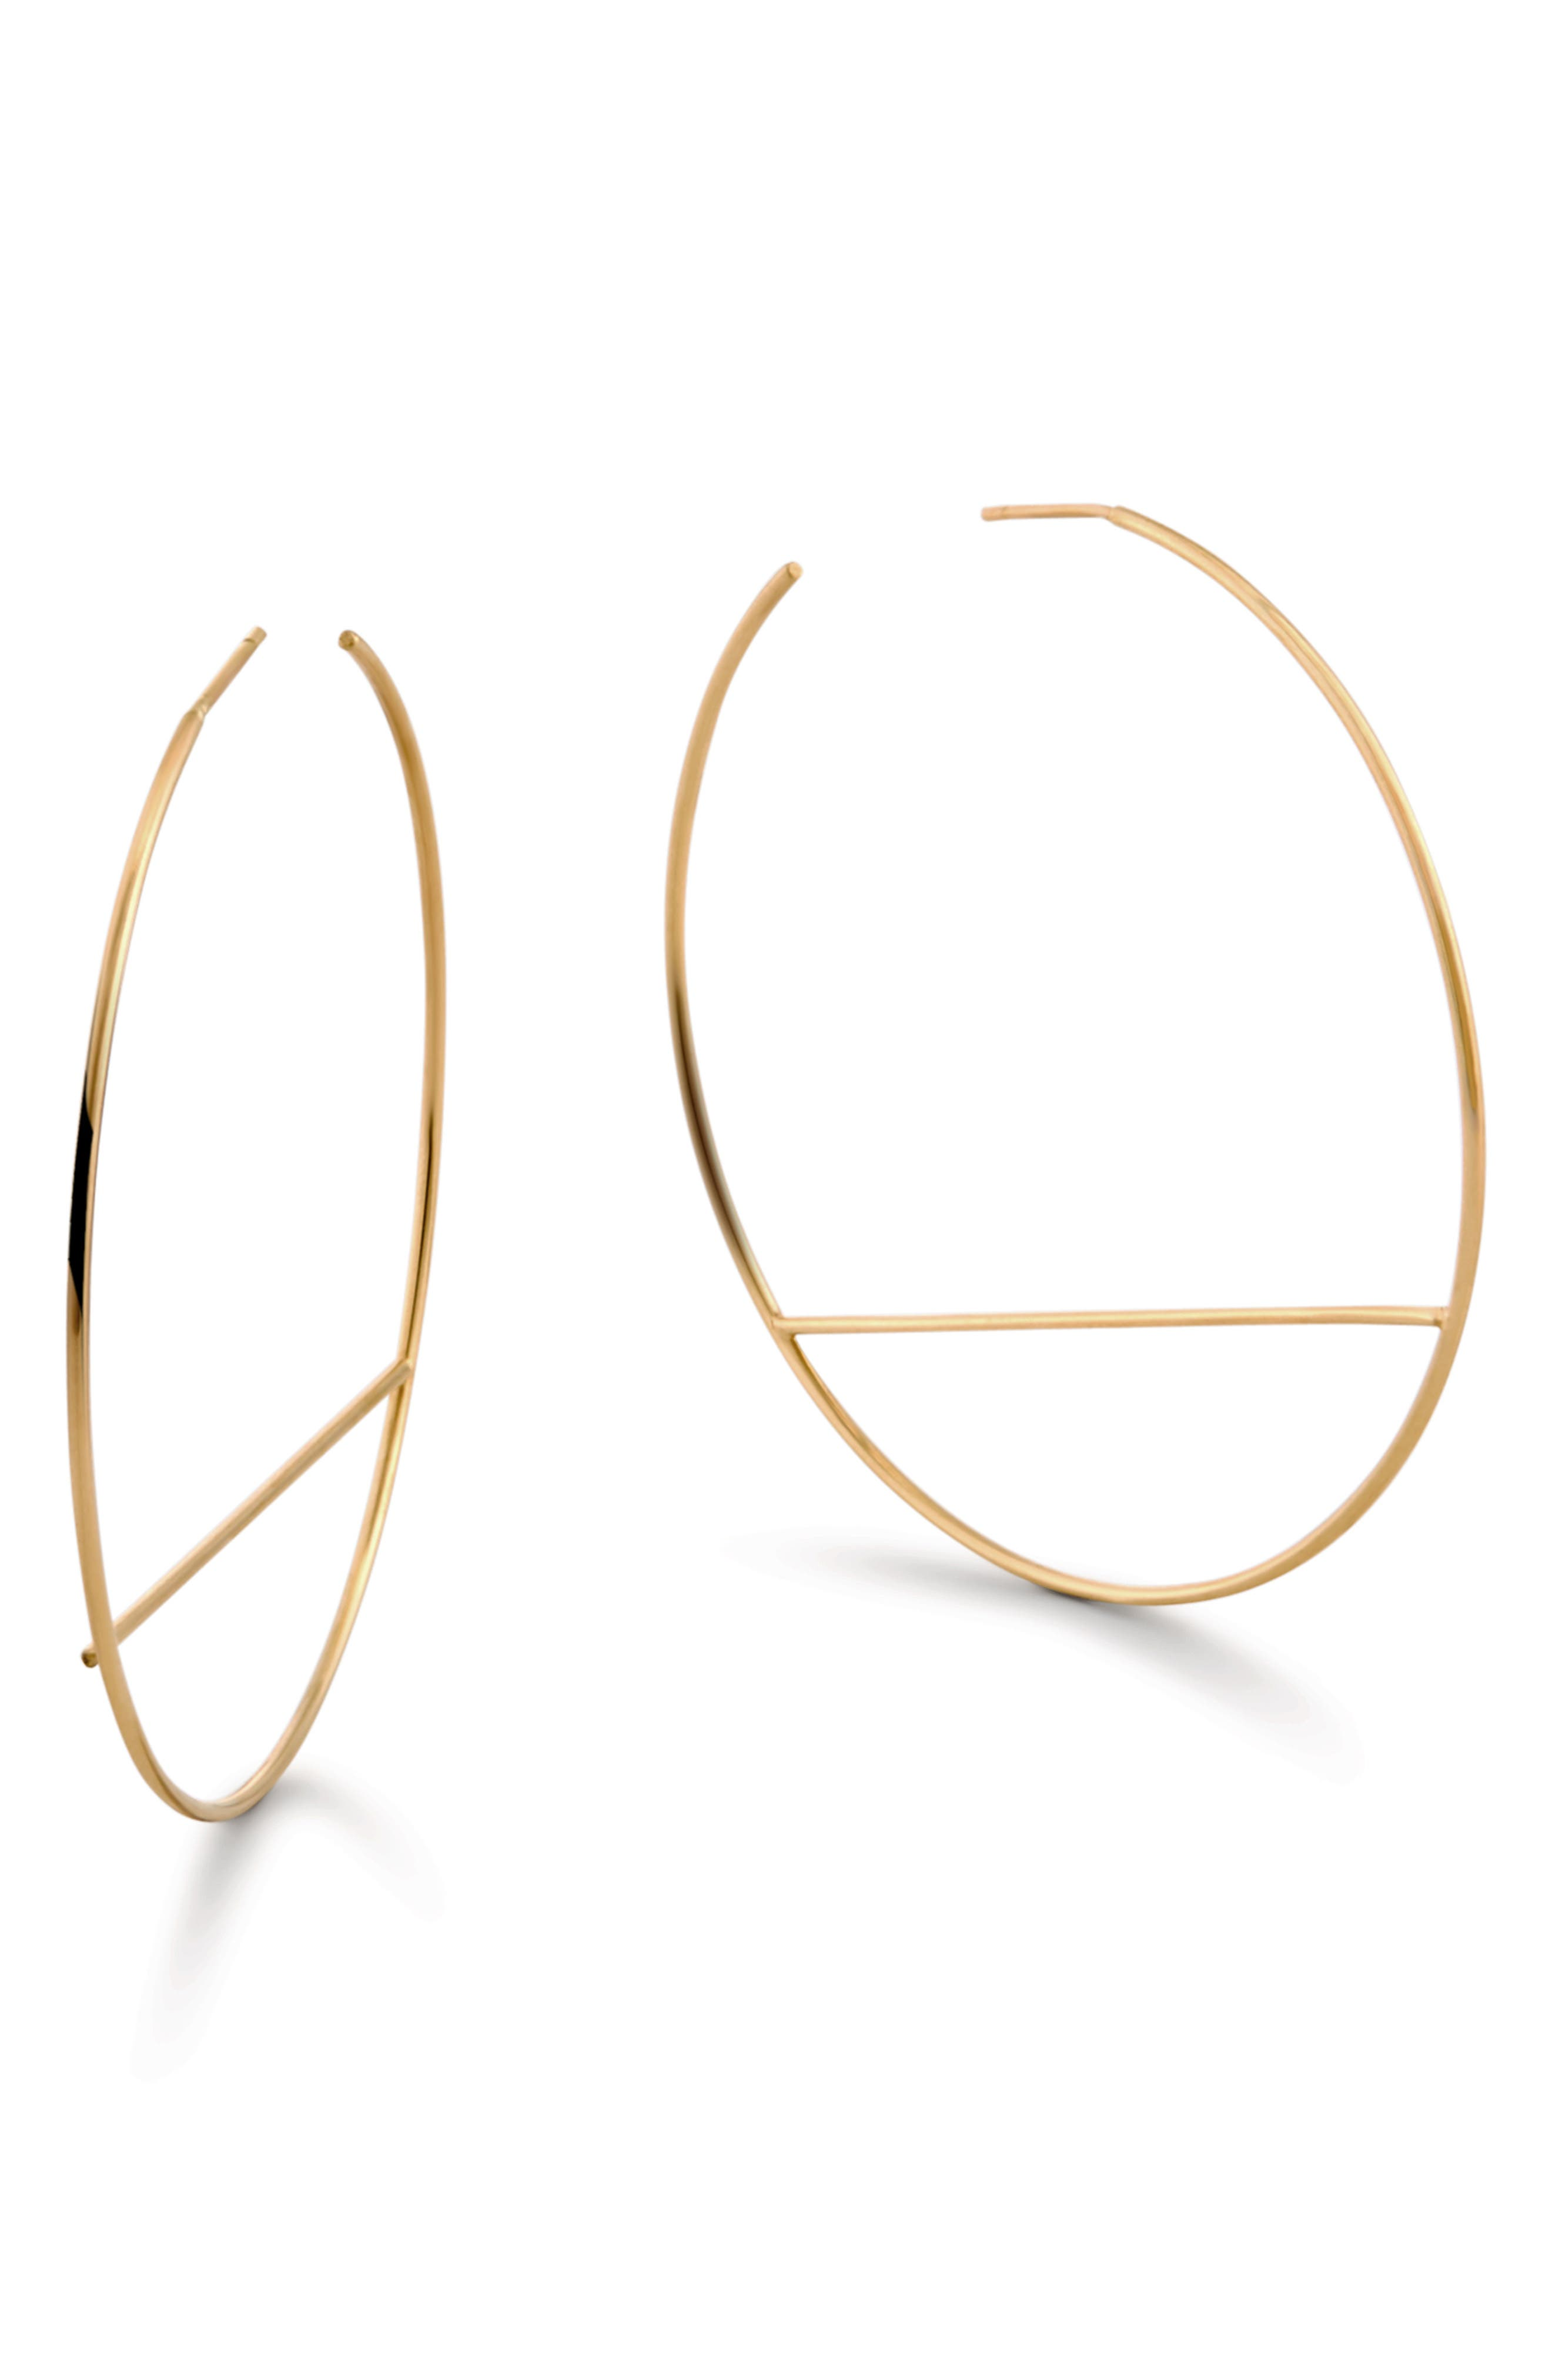 Wire Eclipse Hoop Earrings,                             Main thumbnail 1, color,                             Yellow Gold